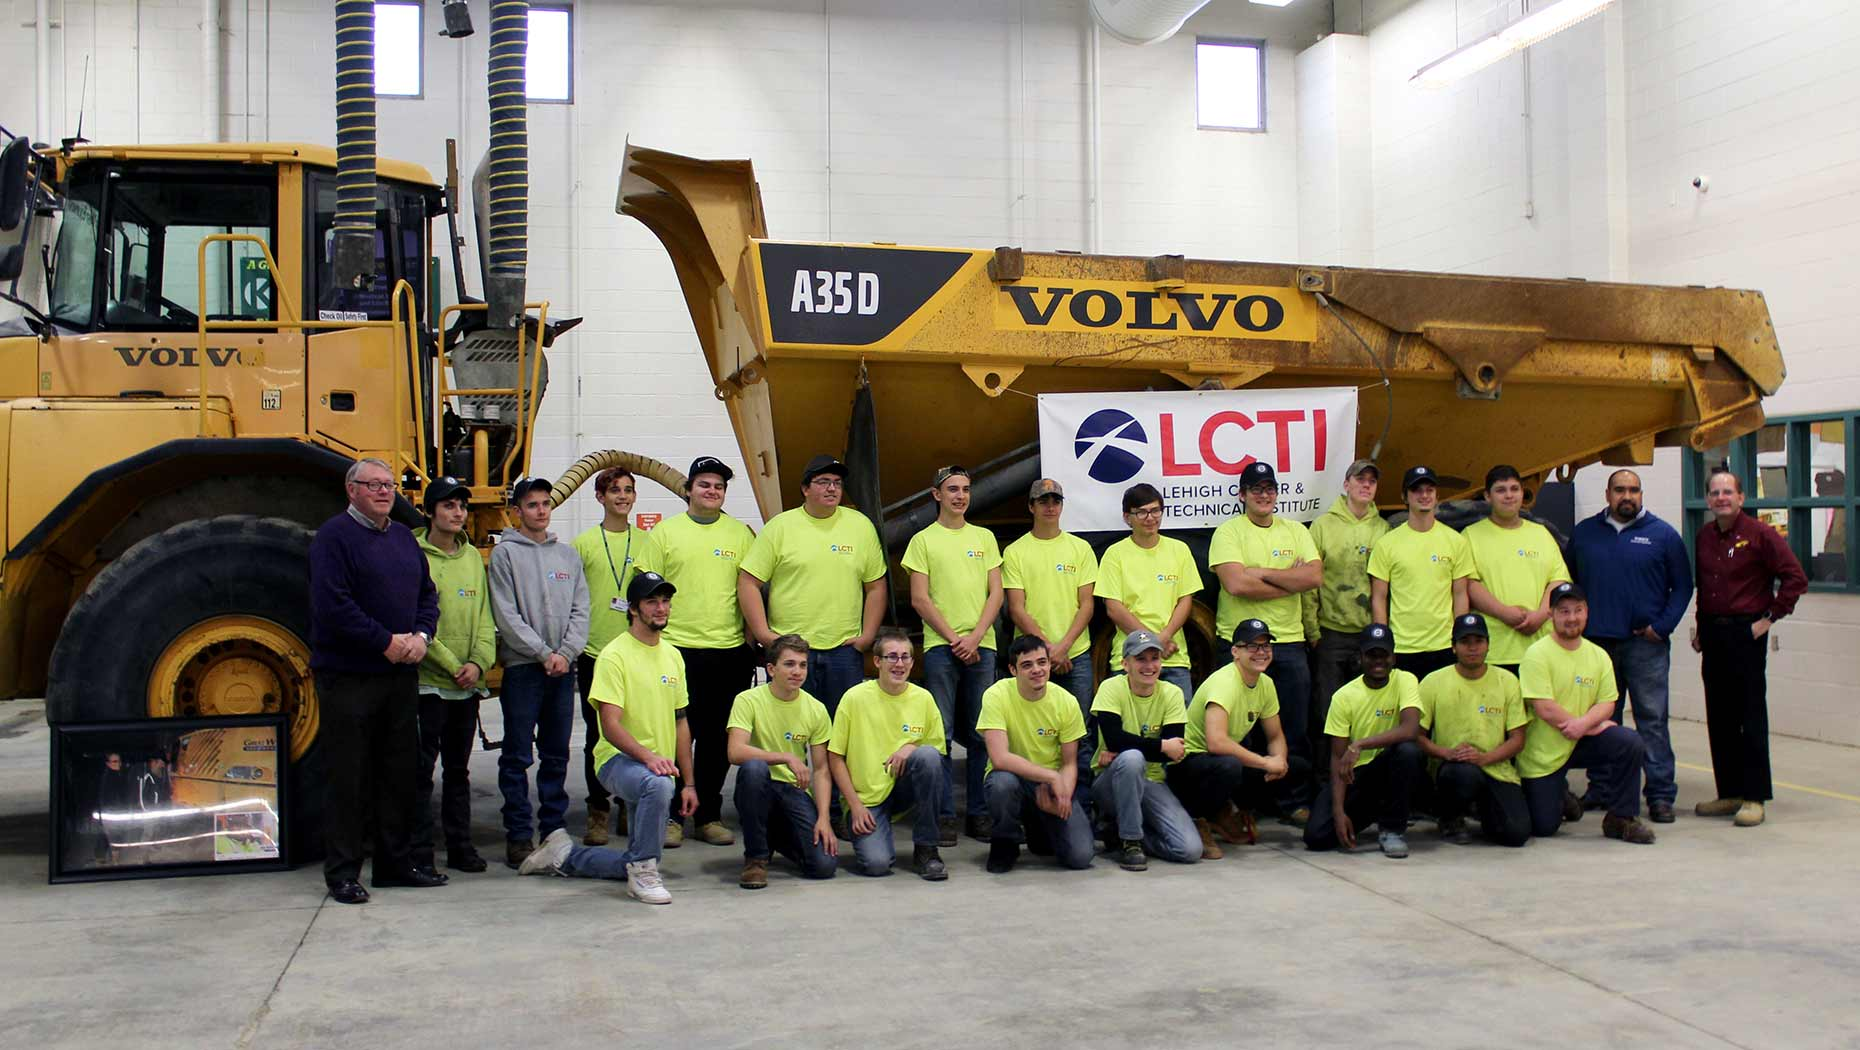 Career-tech-school-receives-Gold-Rush-haul-truck-from-Volvo-CE